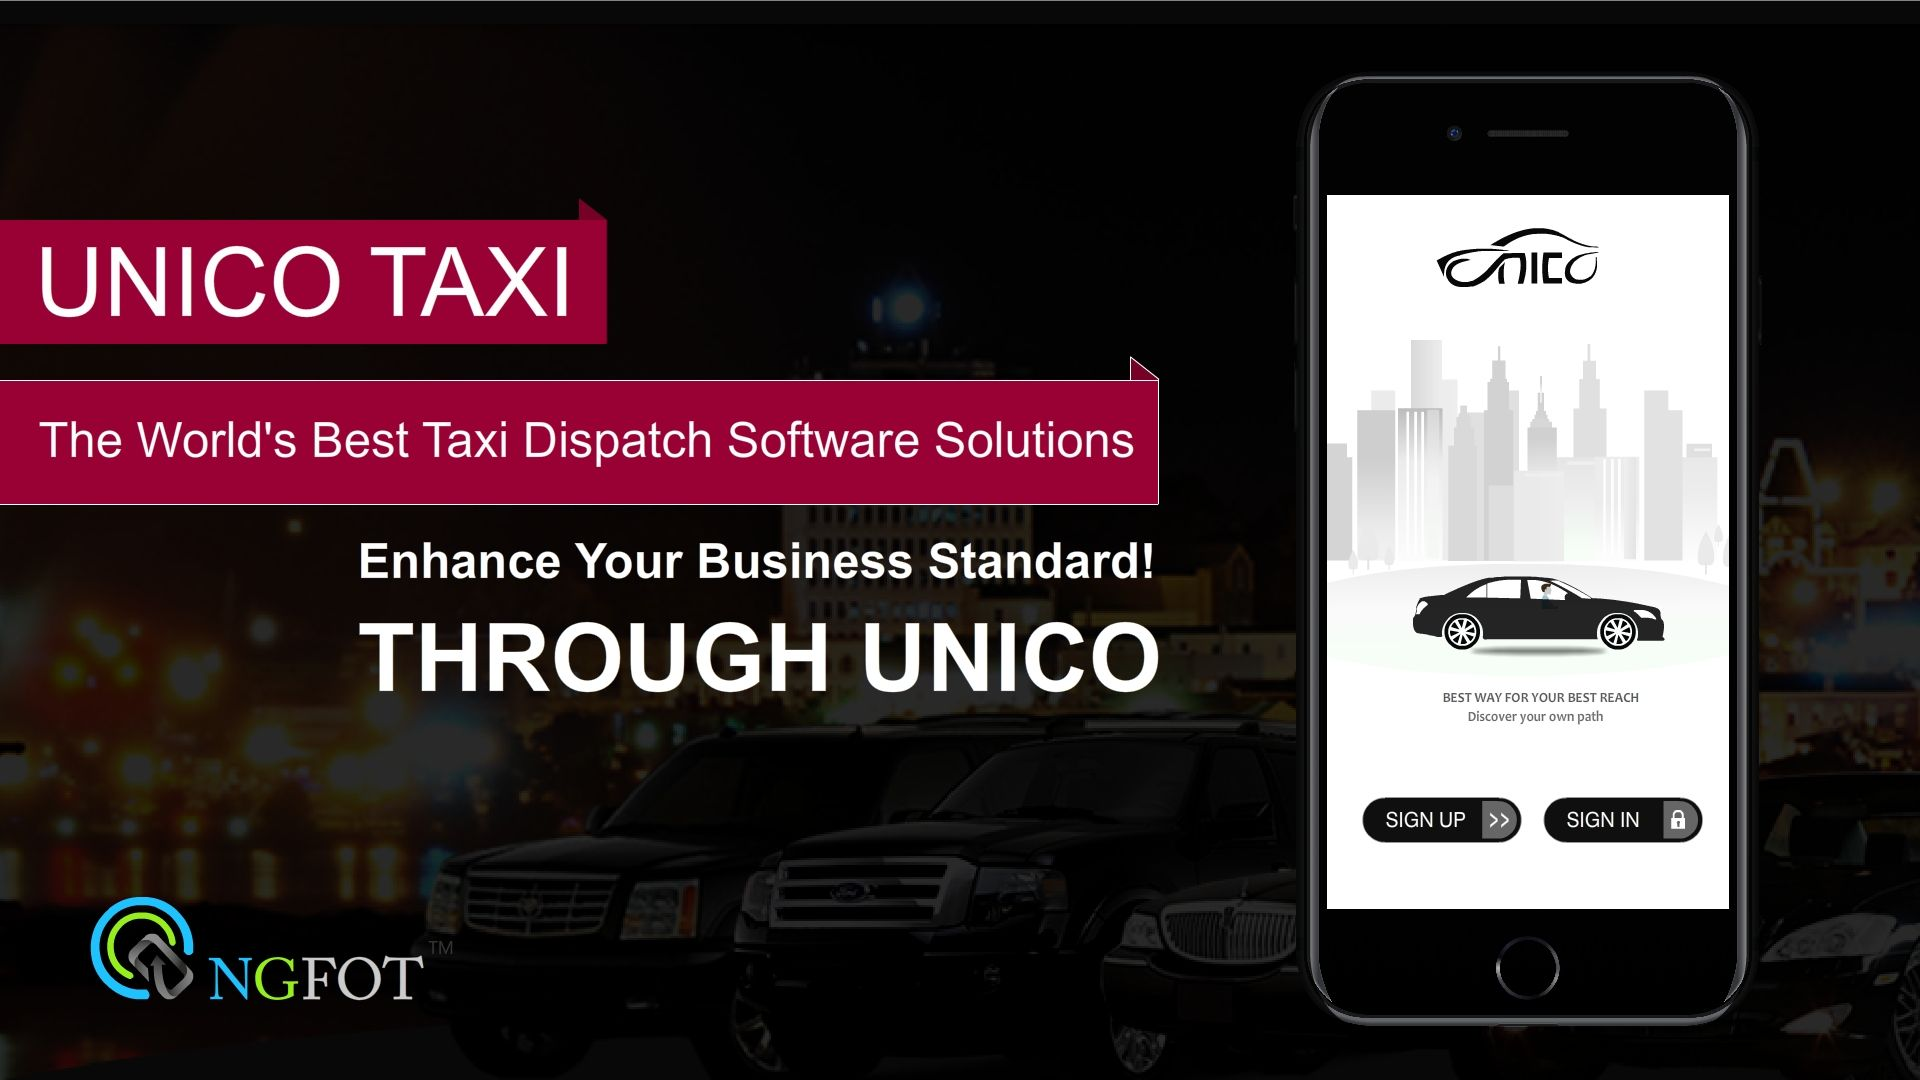 Cloudbased software for the taxi dispatch would be a